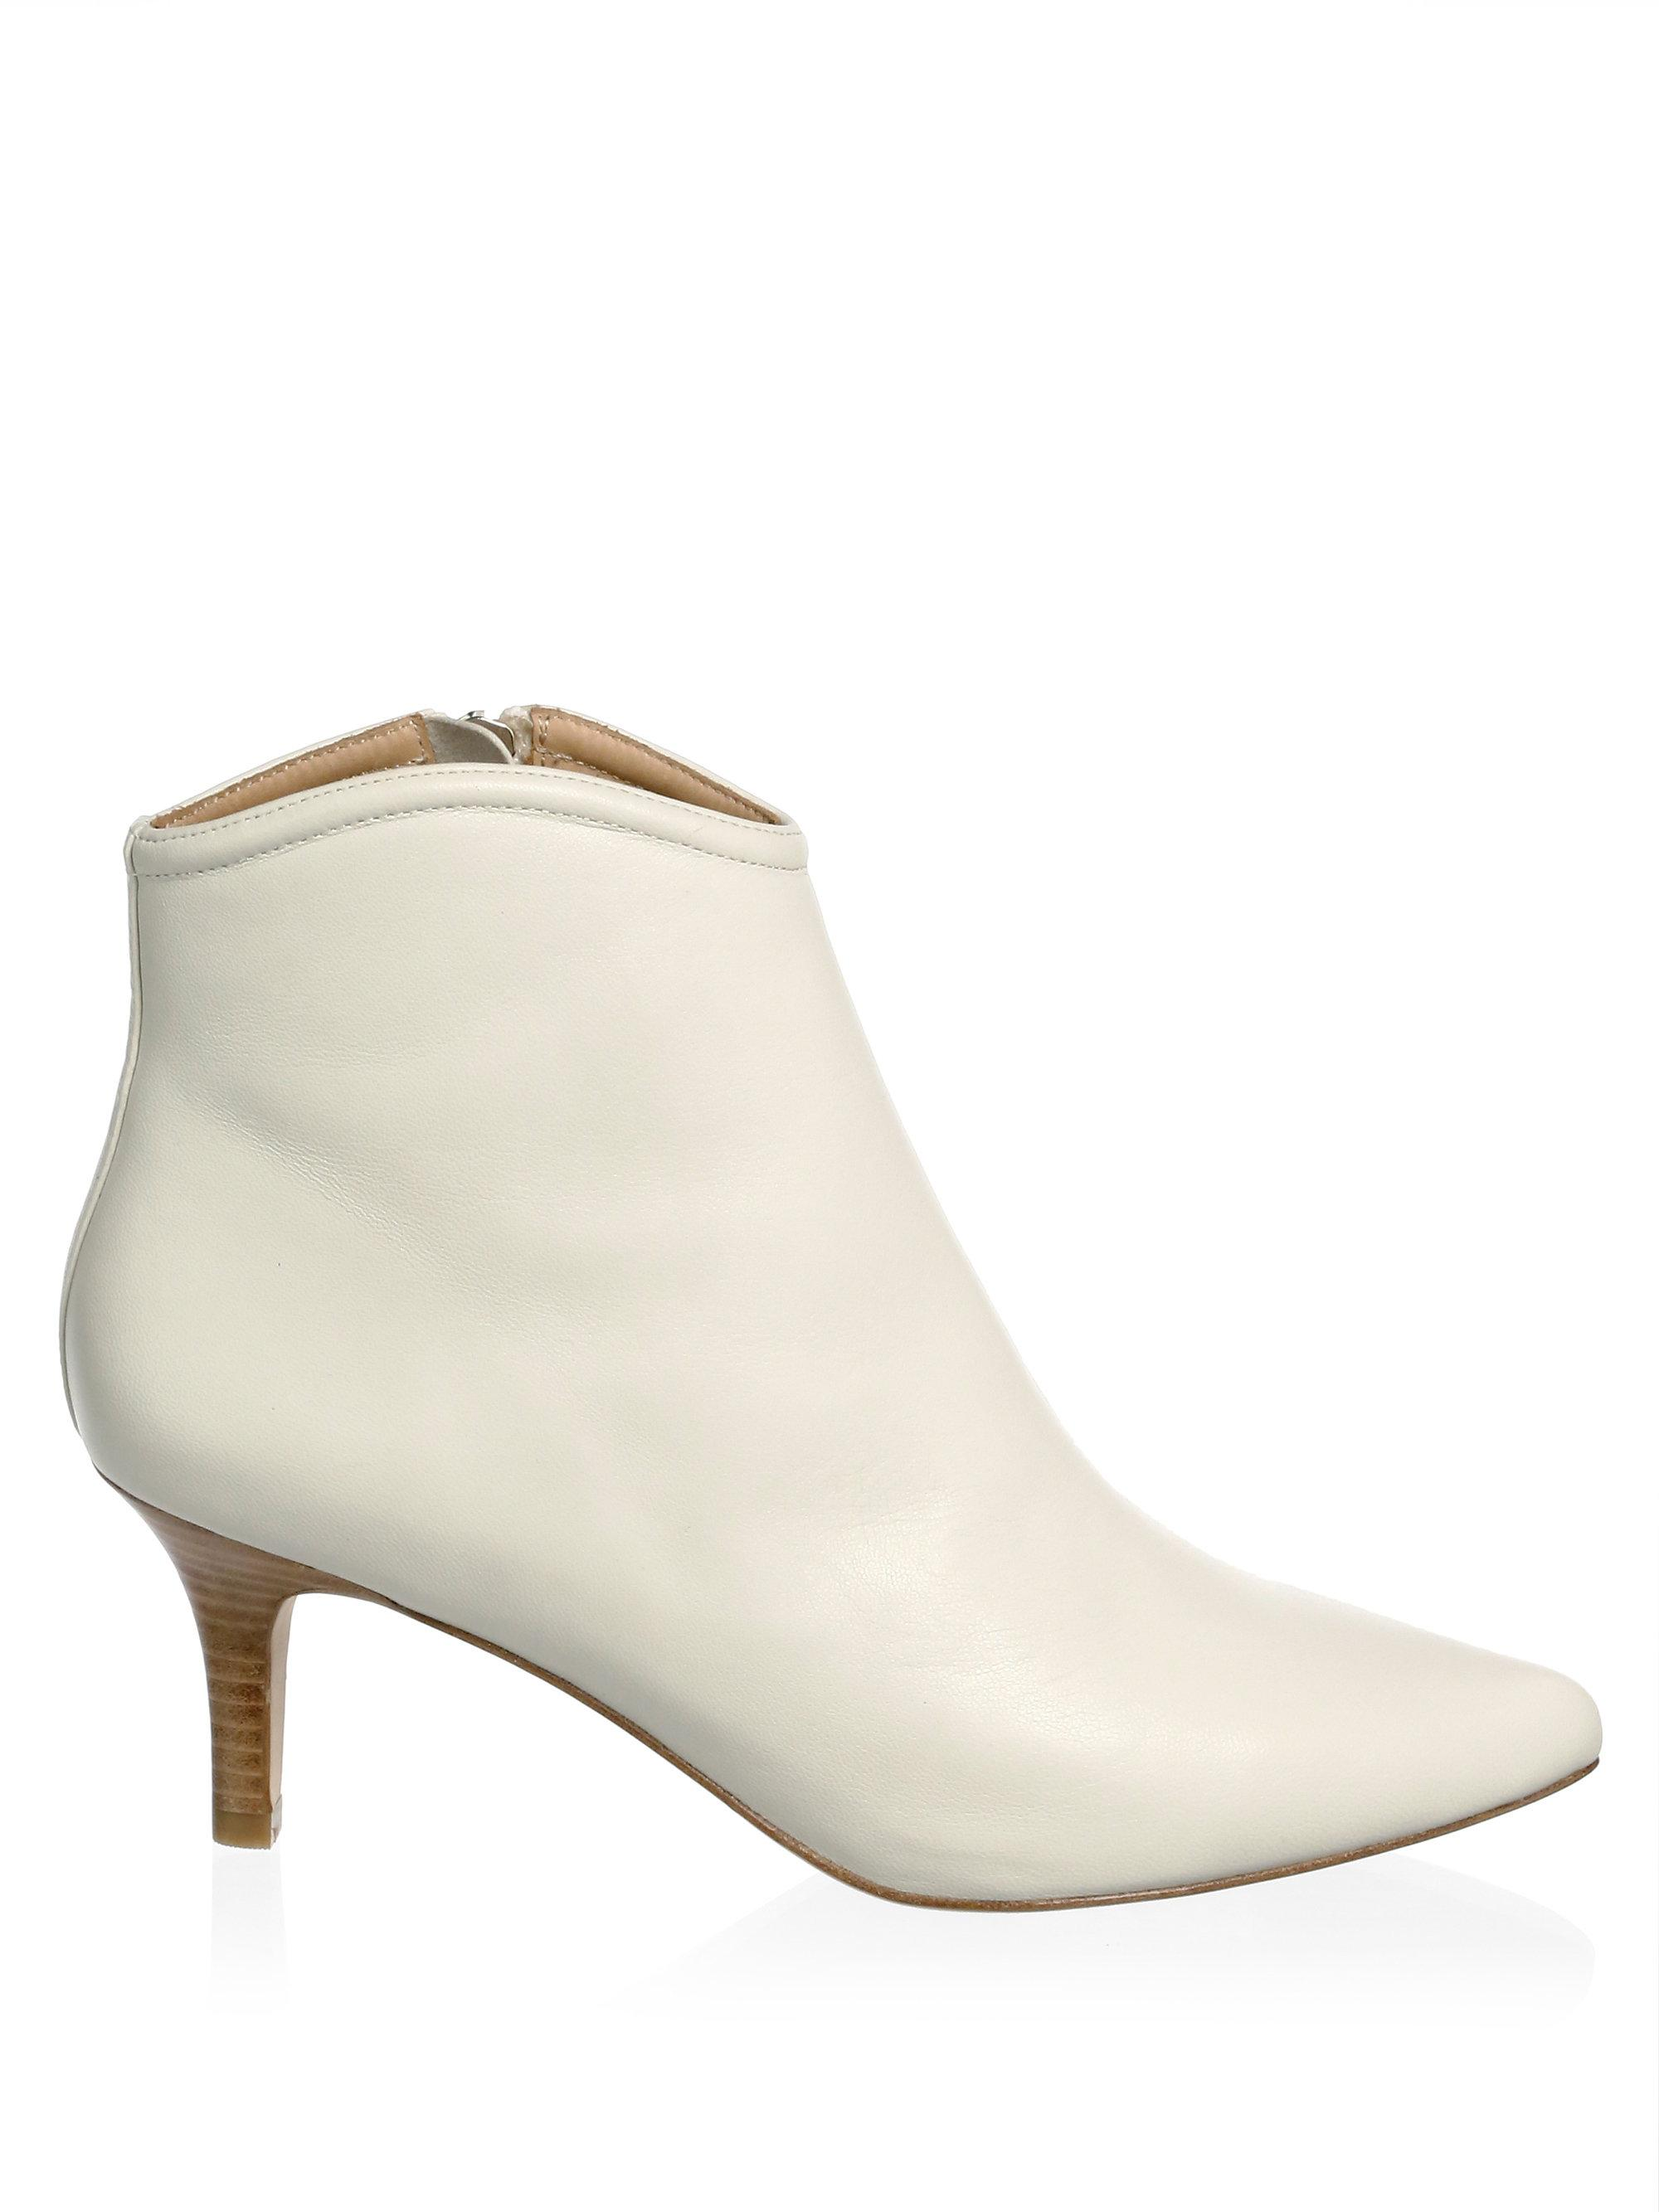 Joie Ralean Leather Booties tGFvoj6iC6